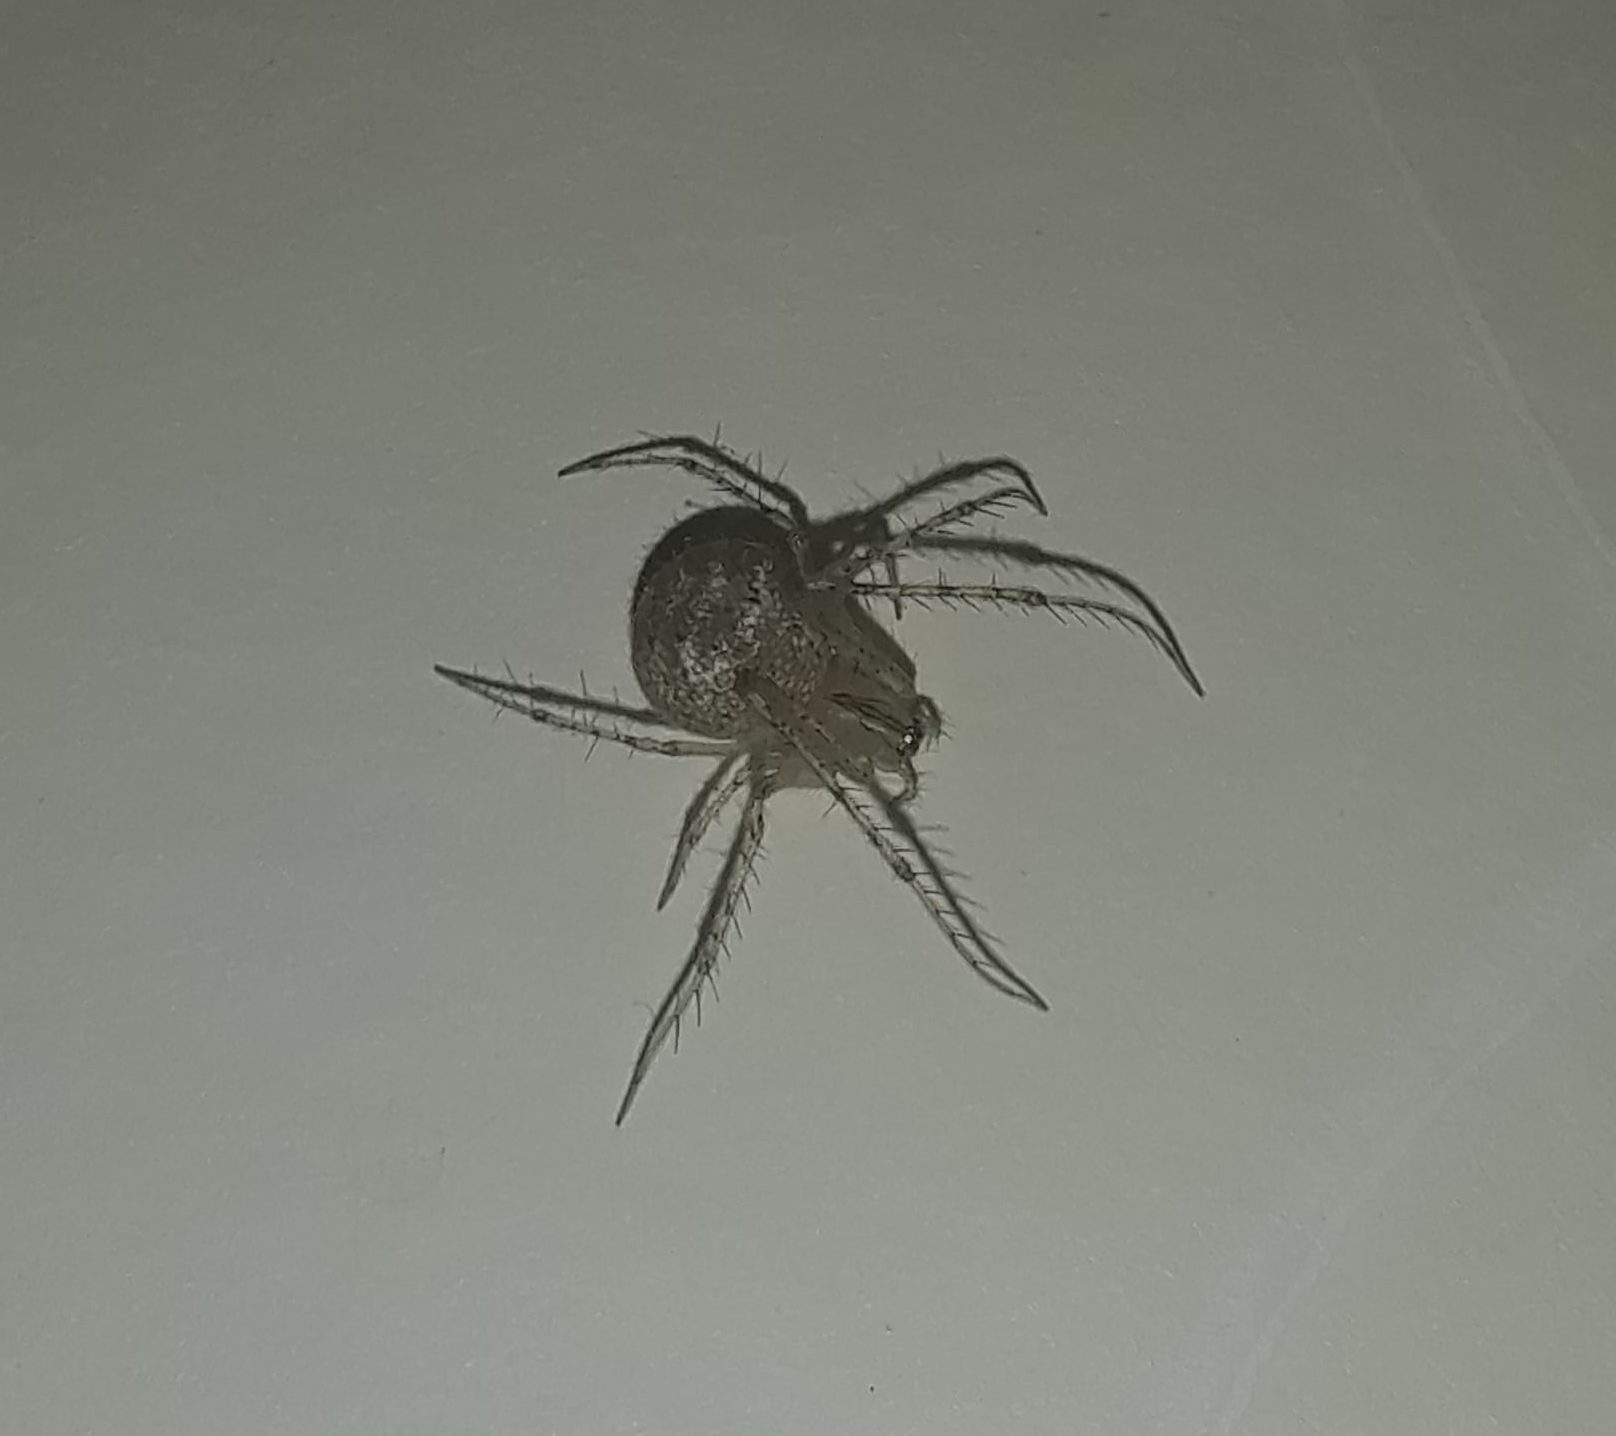 Picture of Reo eutypus - Female - Dorsal